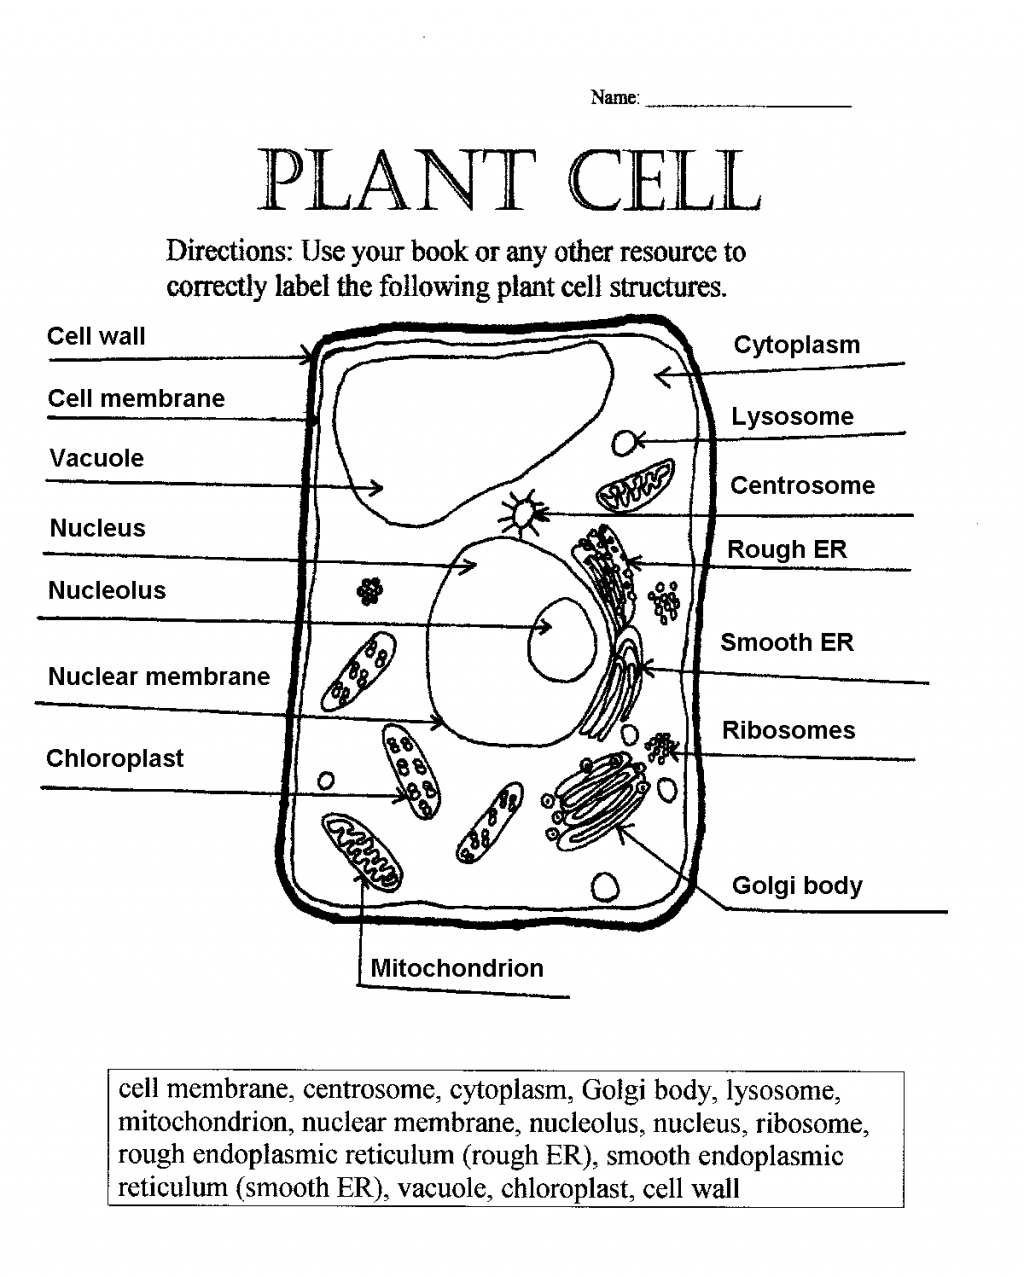 Printables Blank Plant Cell Worksheet printables label plant cell worksheet sharpmindprojects fireyourmentor free printable worksheets 5 in biological